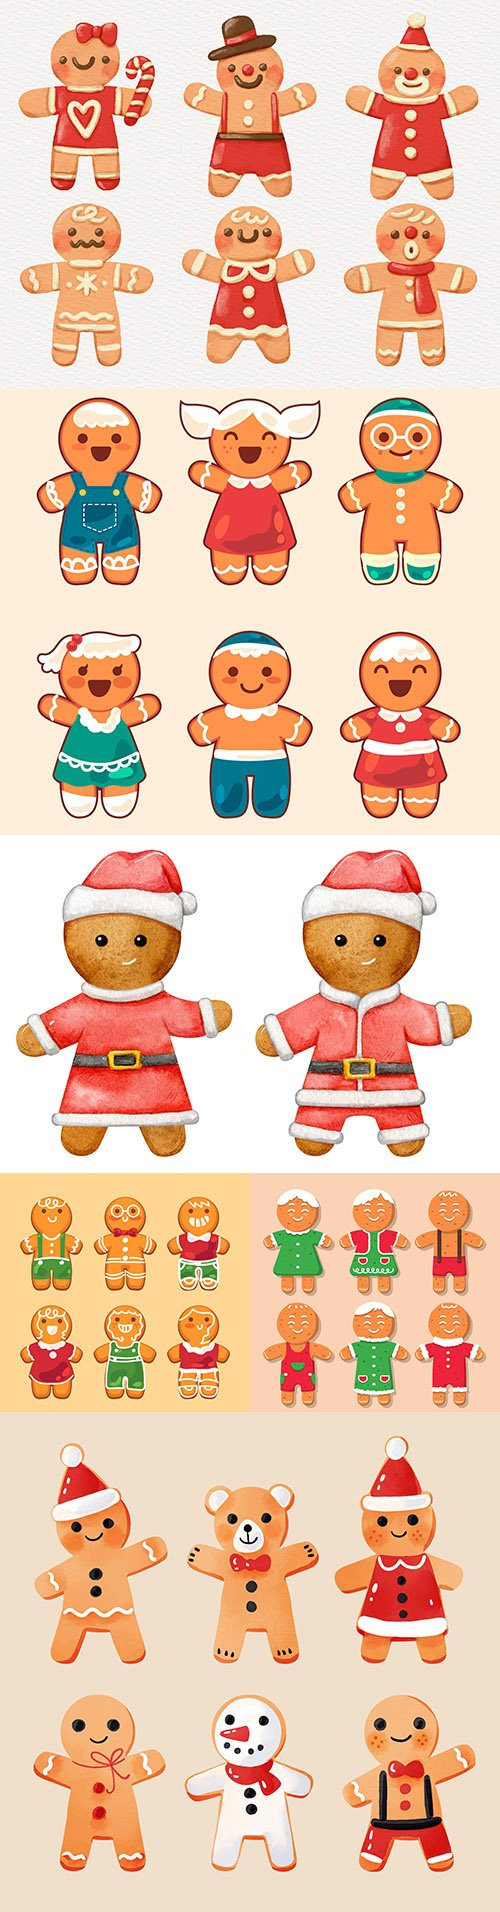 Christmas baking decorative gingerbread man flat design